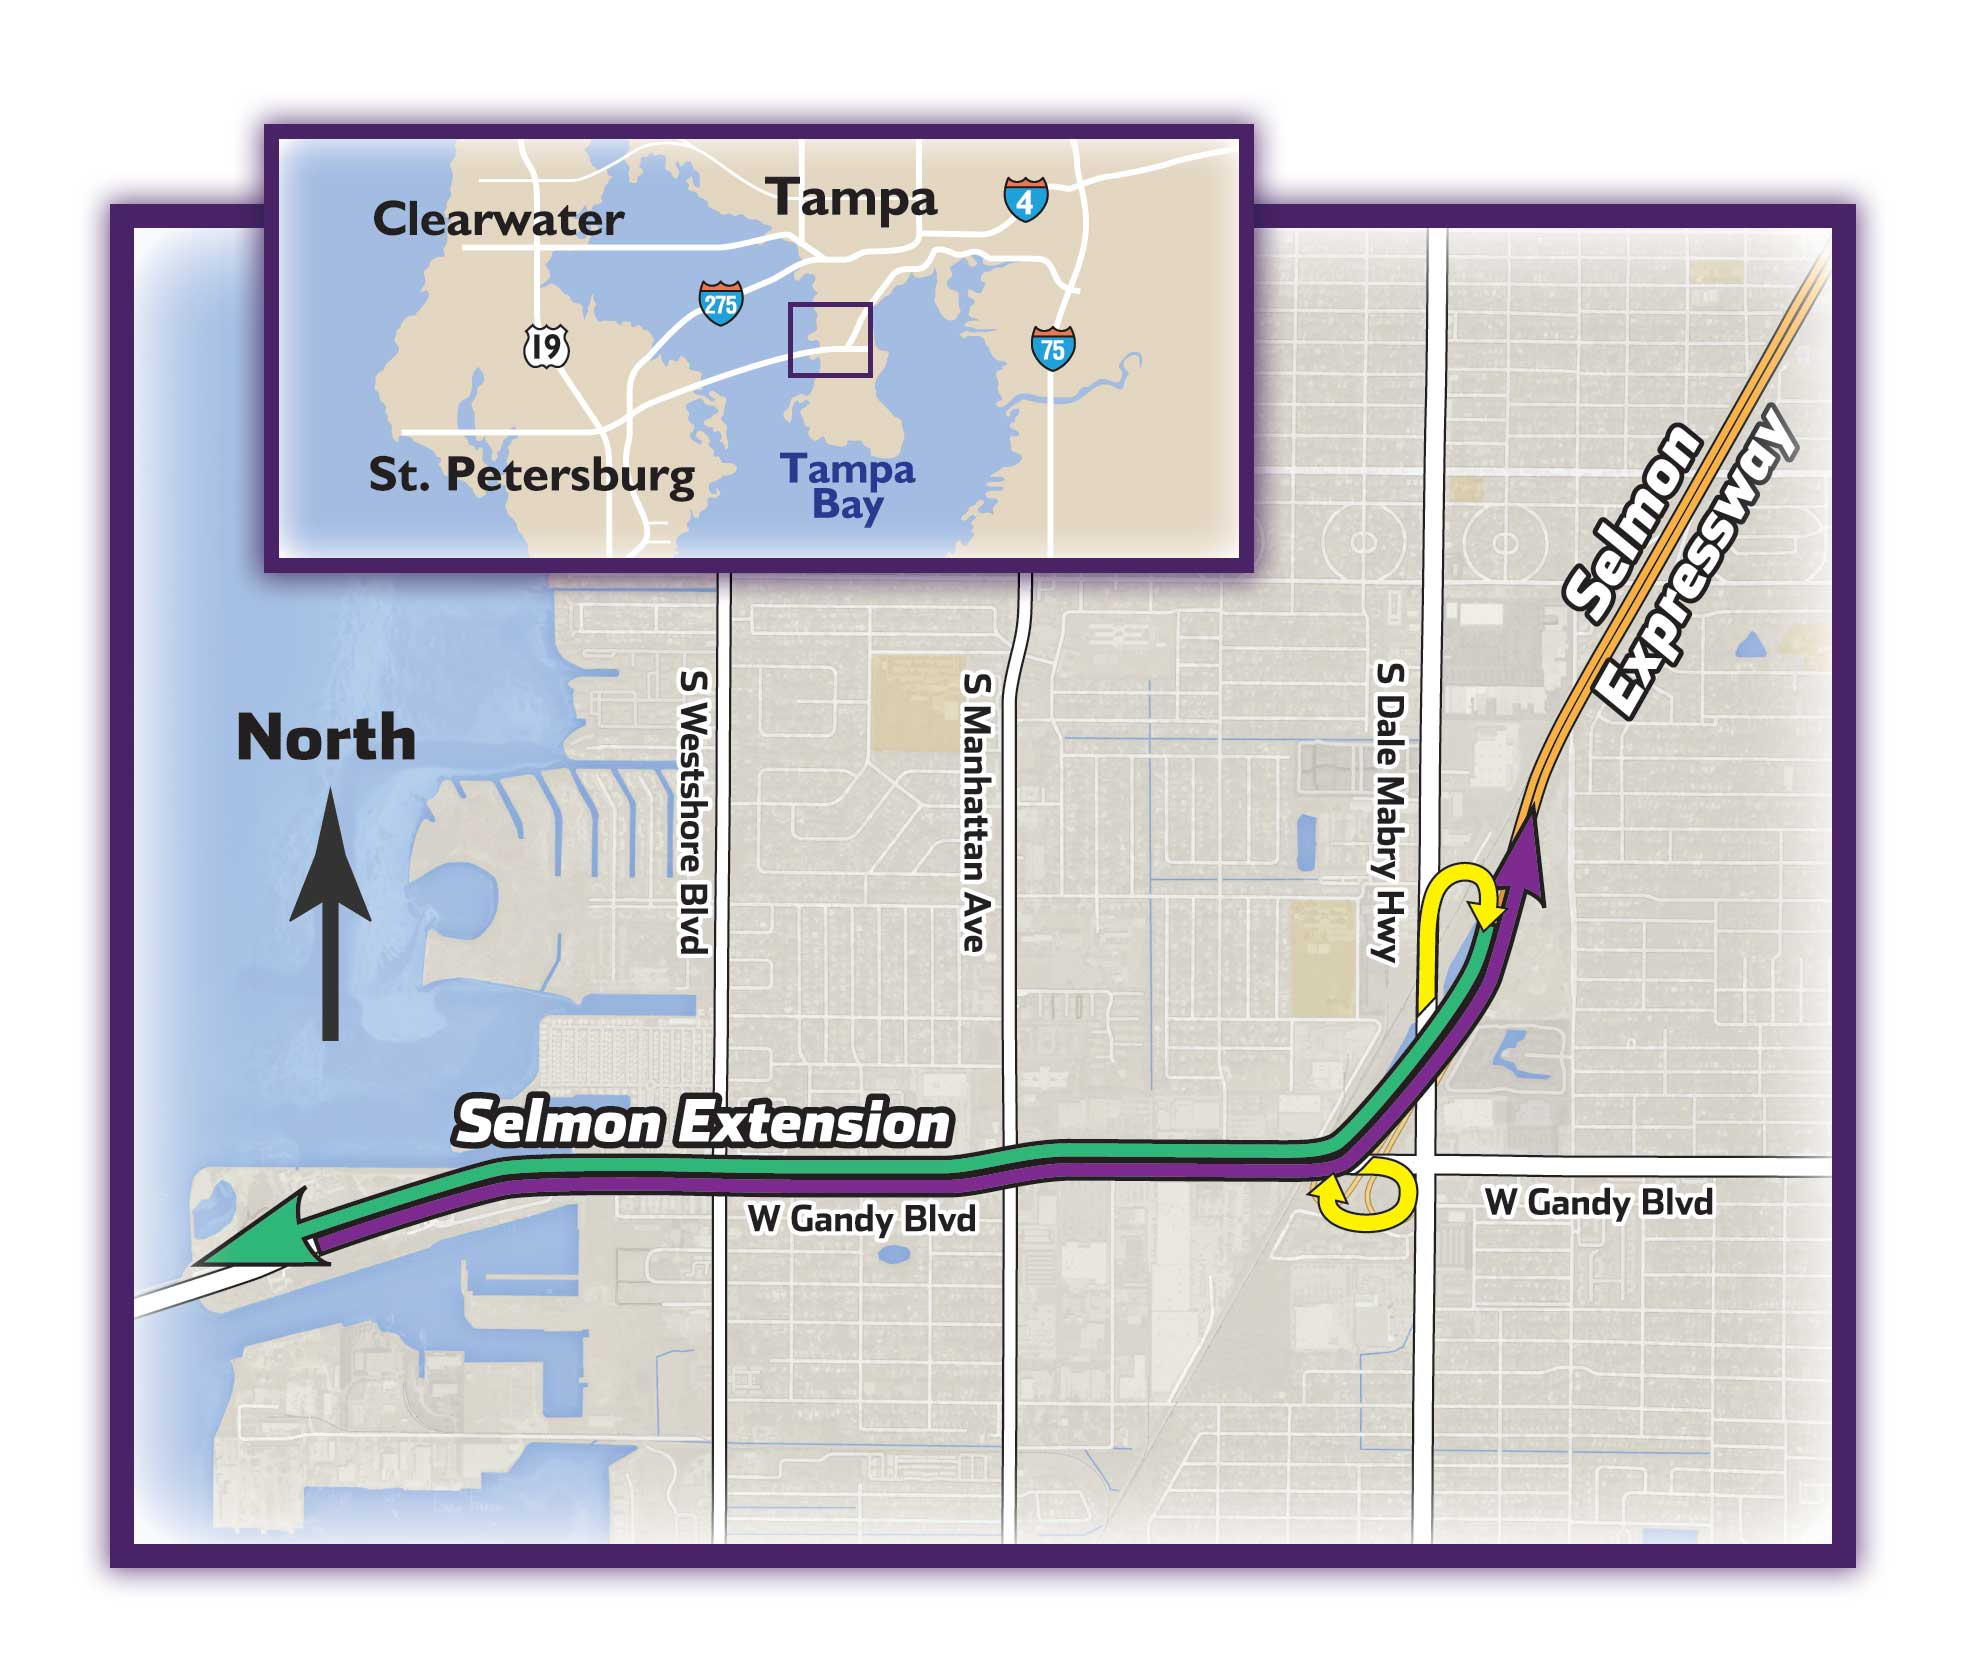 Typical Section & Maps   The Selmon Extension on map of hwy 301, map of dulles greenway, map of indiana toll road, map of dulles toll road, map of suncoast parkway,